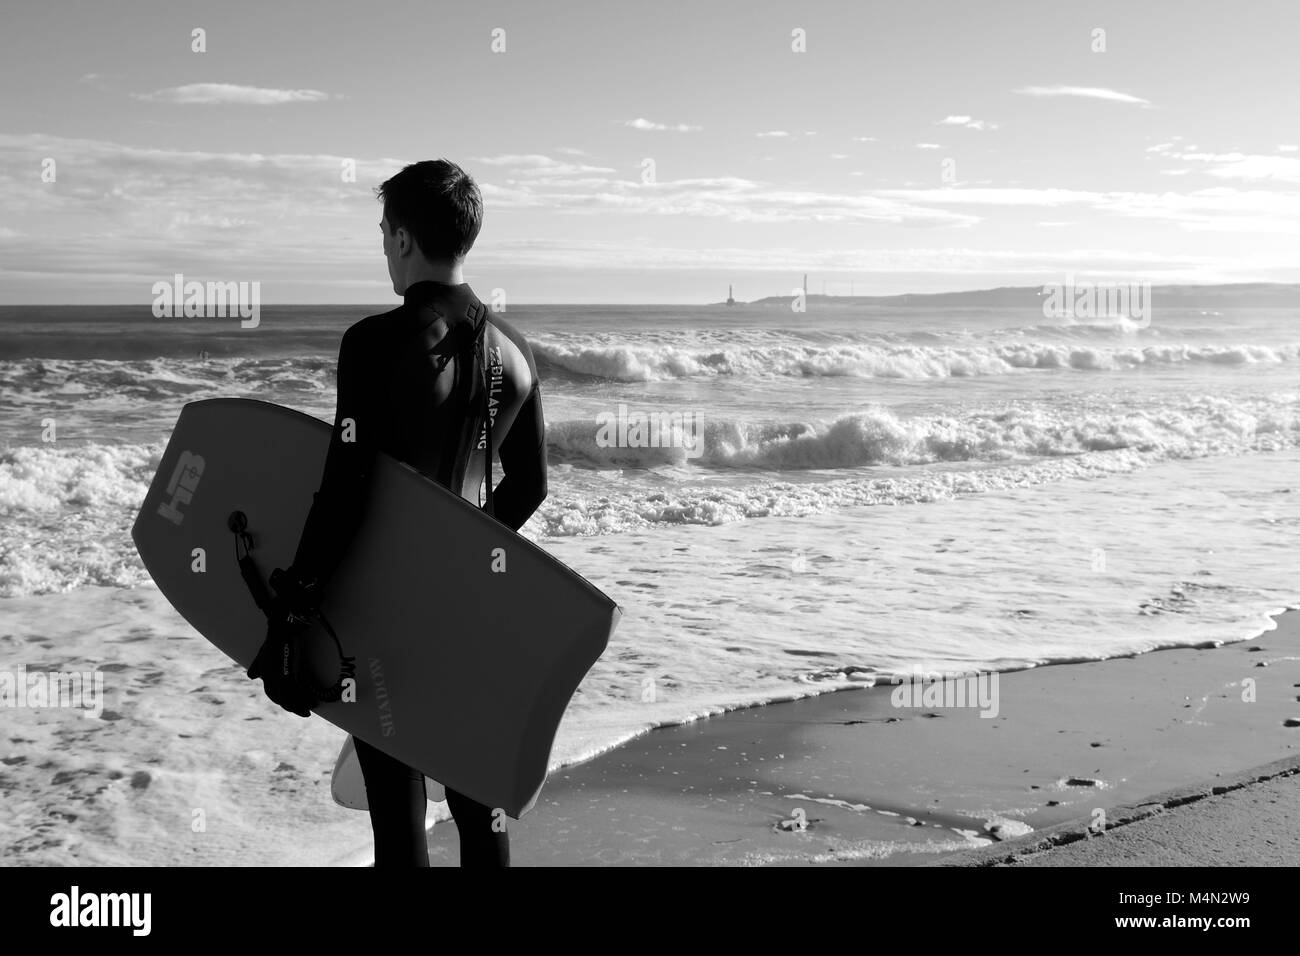 Male Bodyboarder Contemplating the Water before Surfing the Cold North Sea Waves at Aberdeen Beach, Scotland, UK. - Stock Image